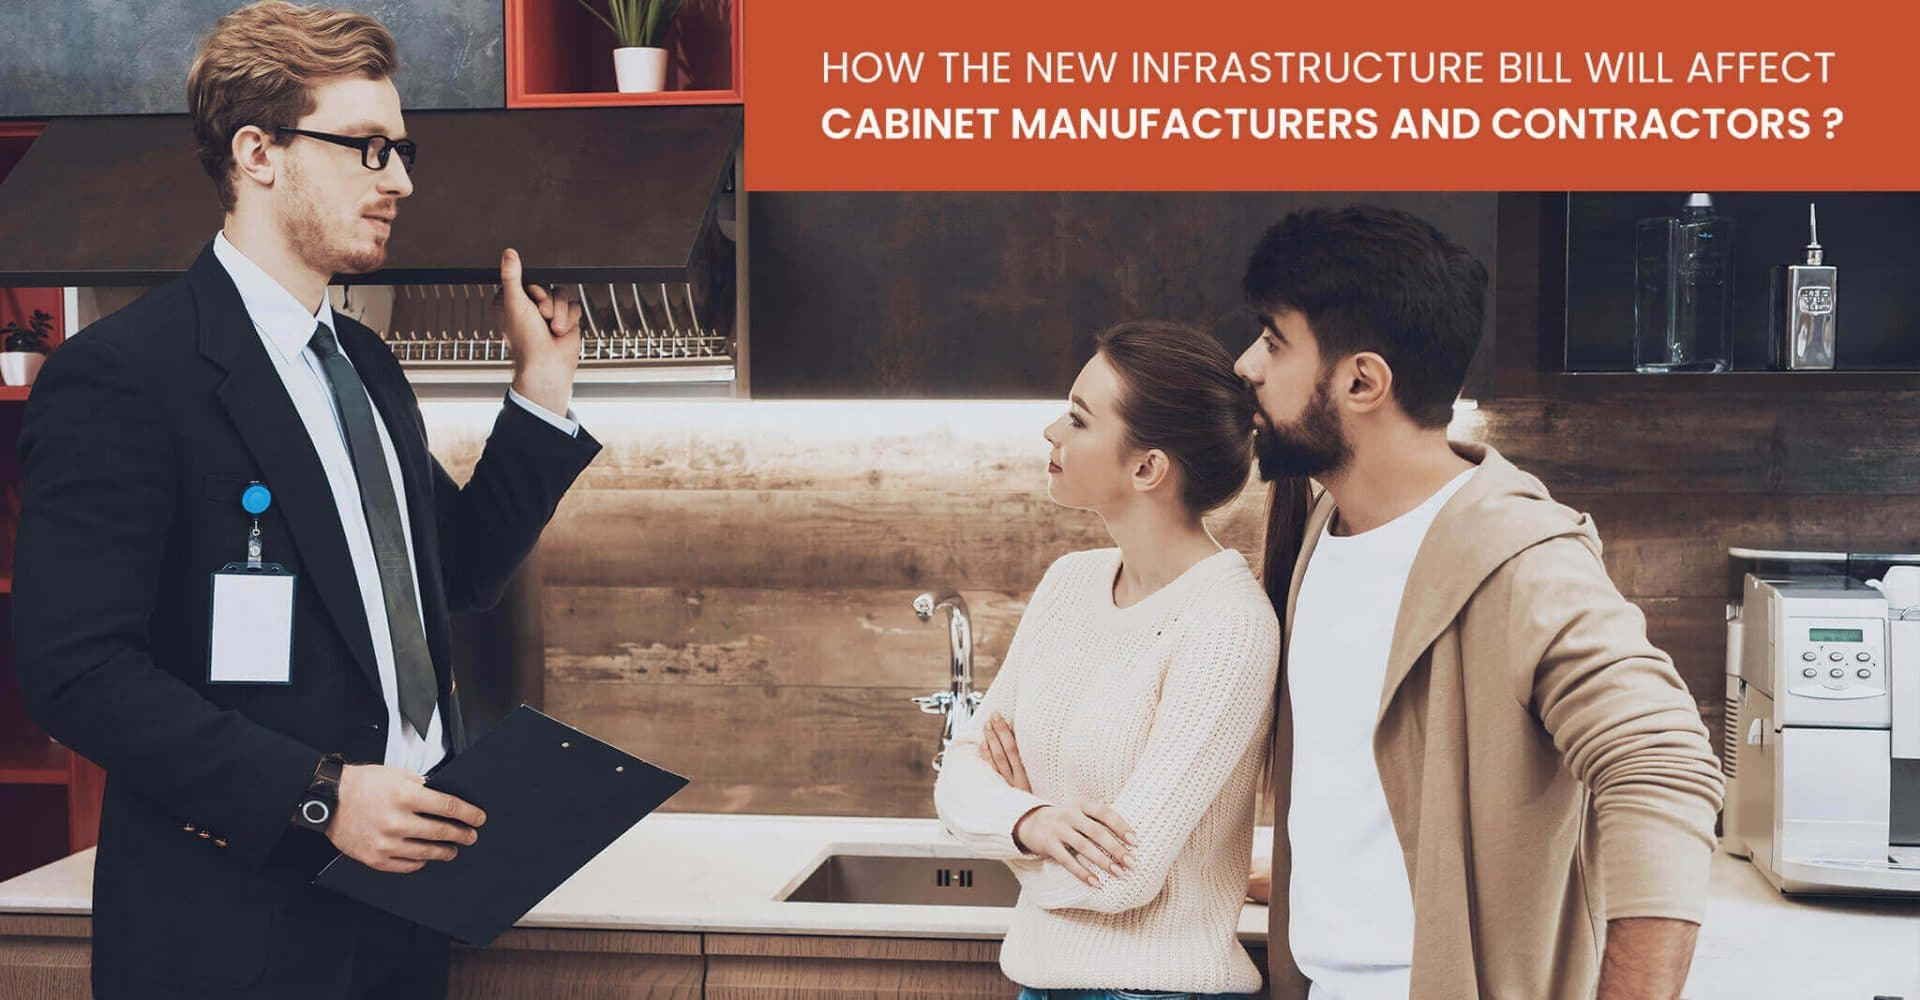 How the New Infrastructure Bill Will Affect Cabinet Manufacturers and Contractors